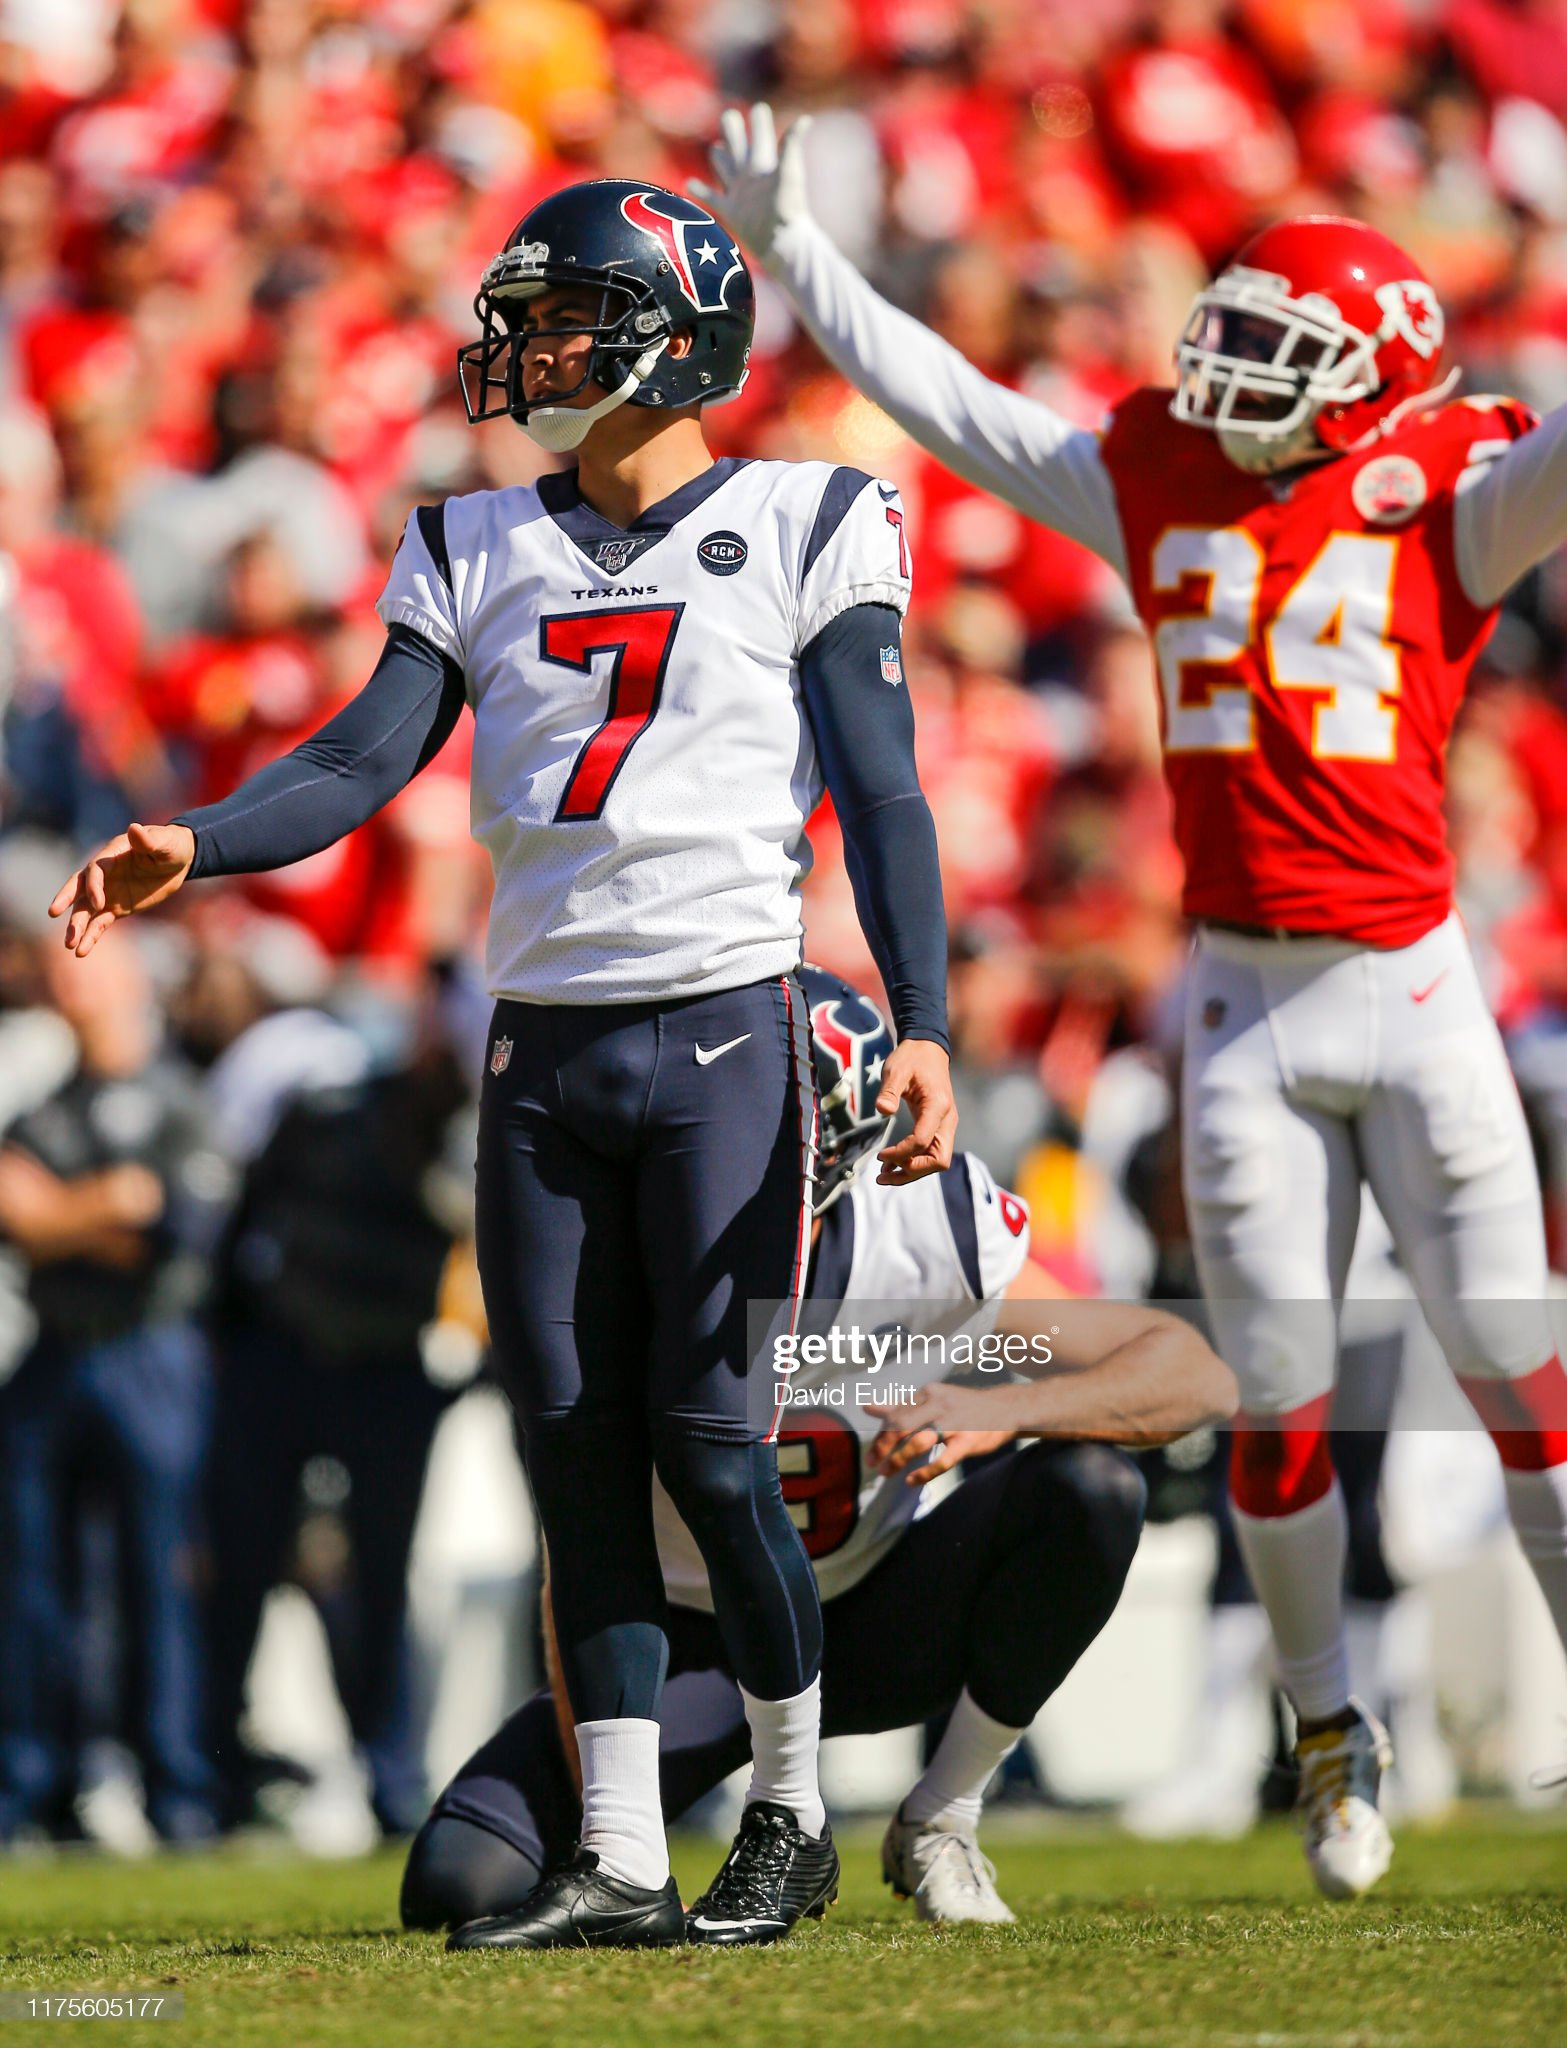 Houston Texans vs Kansas City Chiefs : News Photo